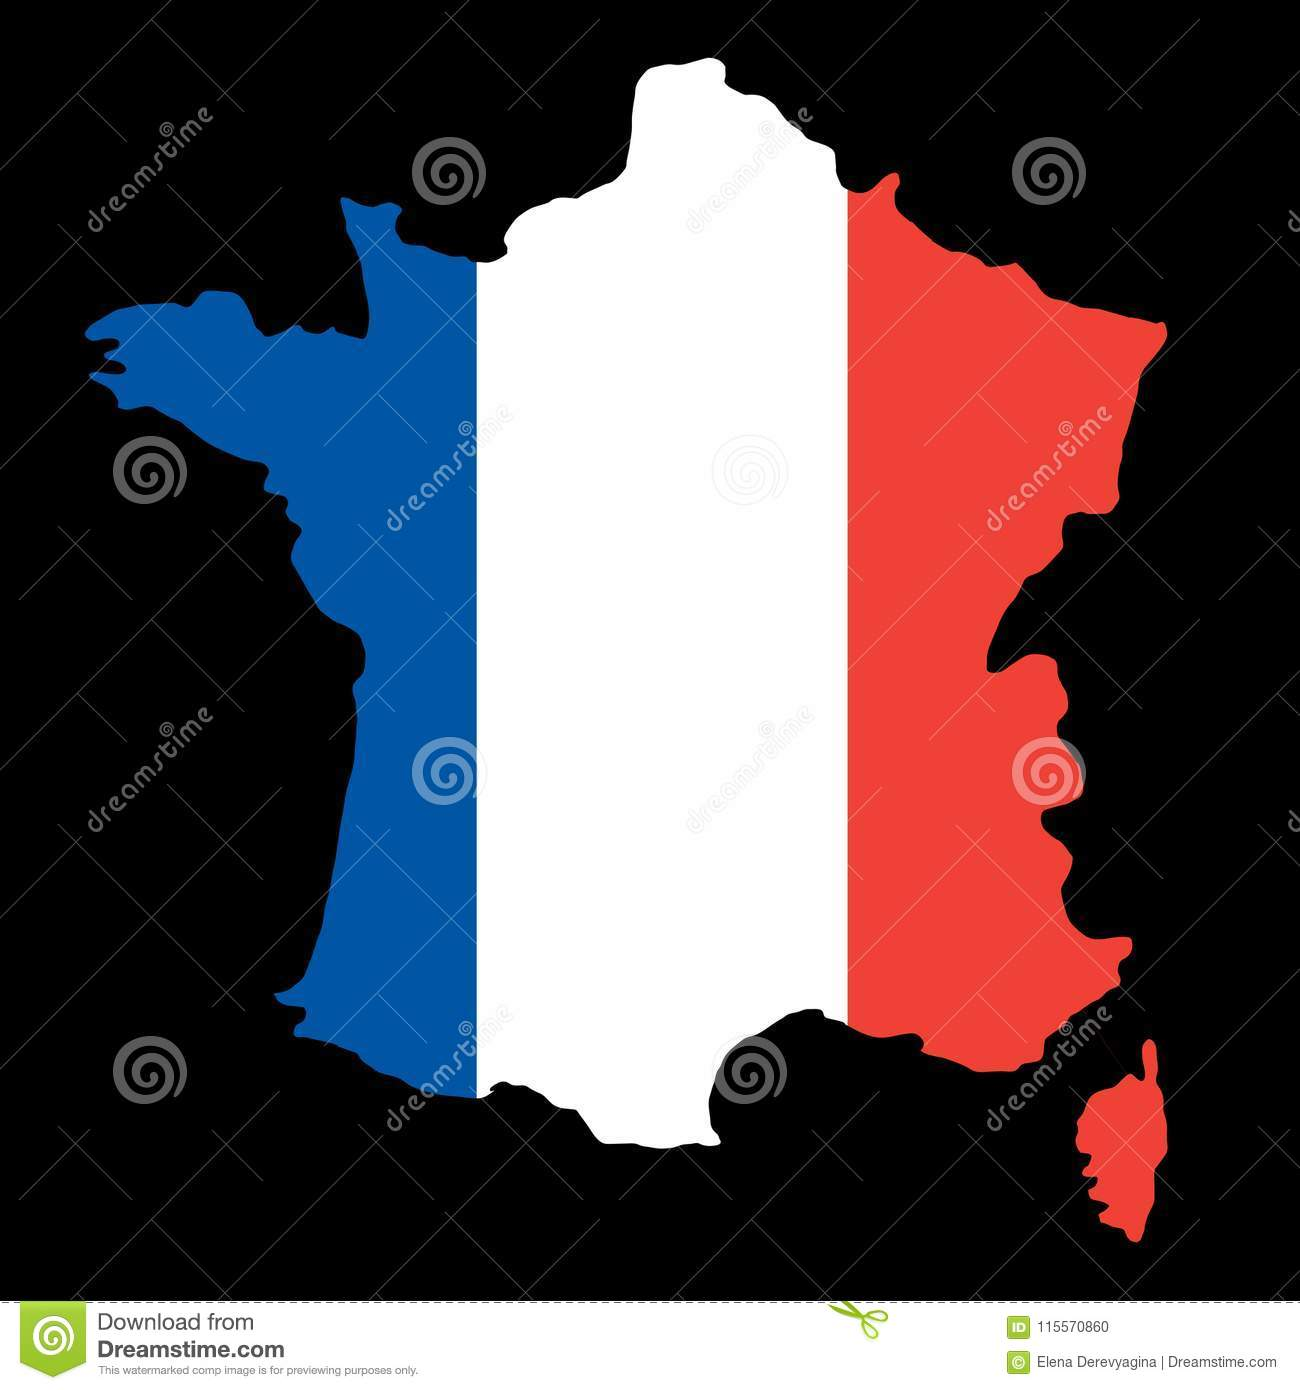 Country Map Of France.Silhouette Country Borders Map Of France On National Flag Background